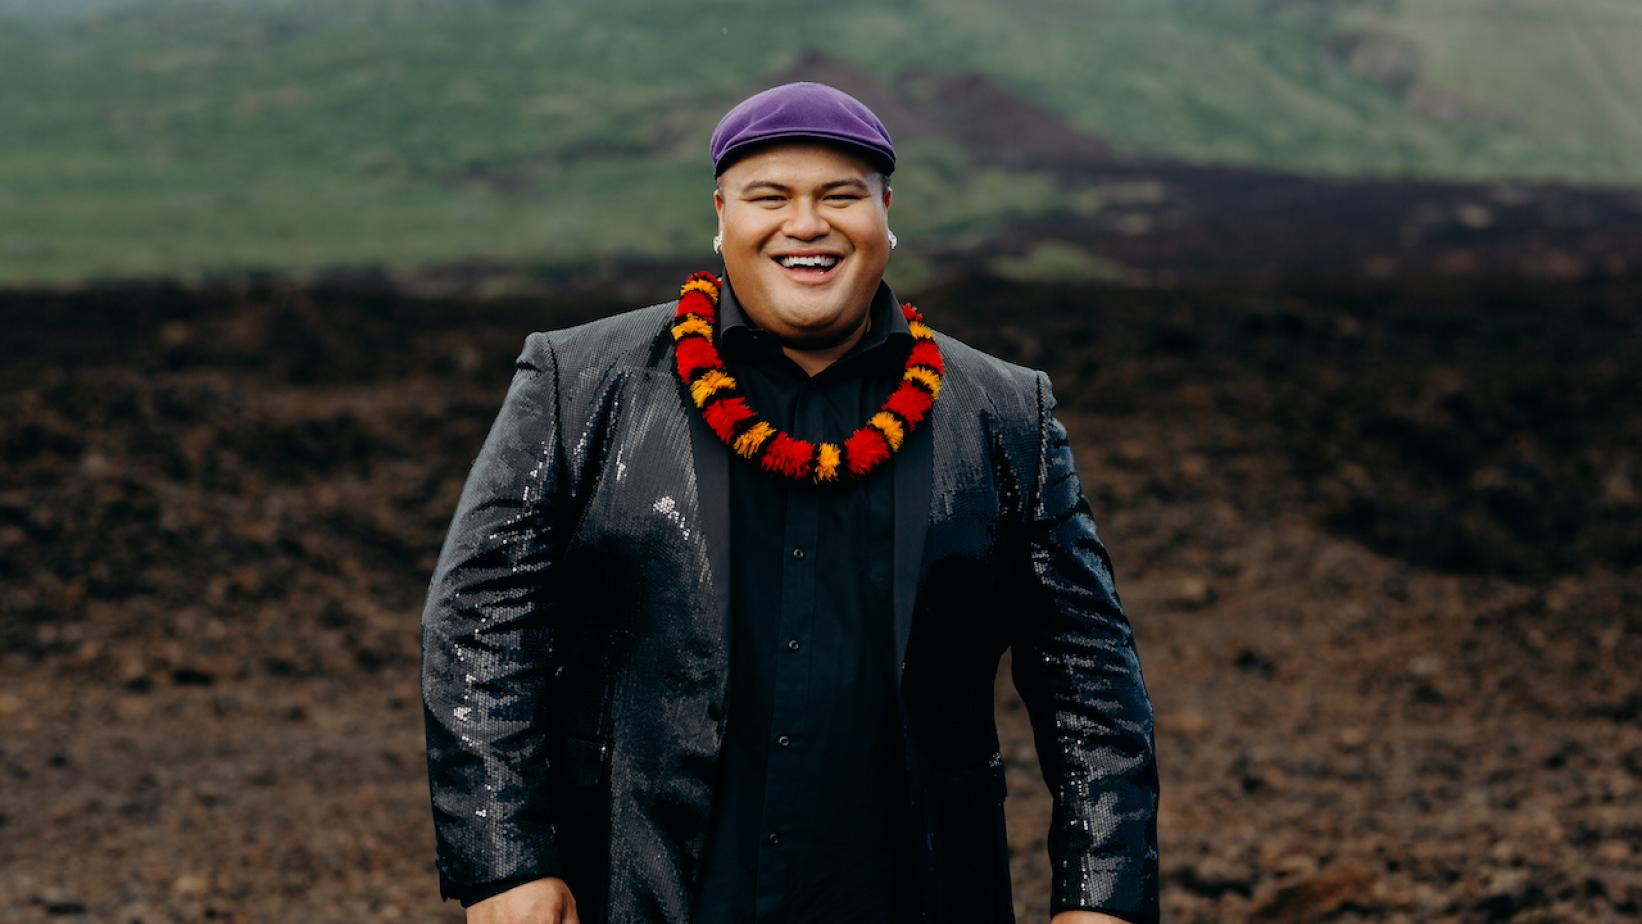 GRAMMY-Winning Singer/Songwriter And Producer Kalani Pe'a